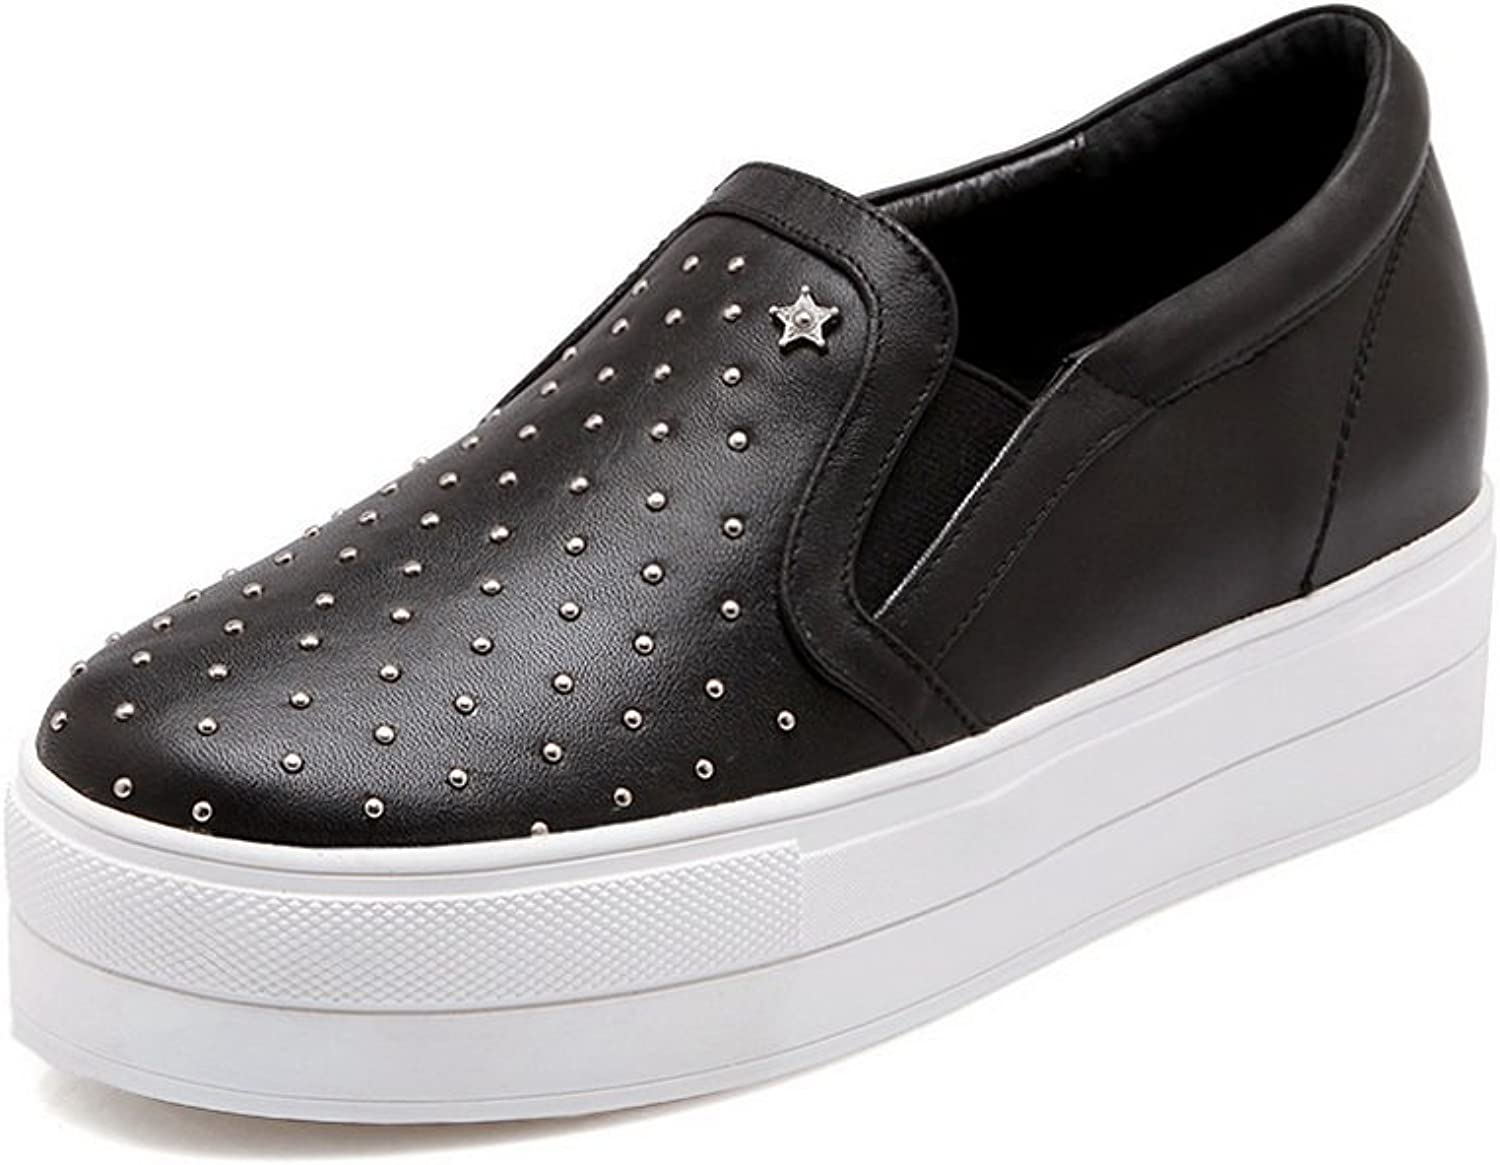 AdeeSu Womens Casual Round-Toe Solid Slip-Resistant Leather Loafers shoes SDC04474